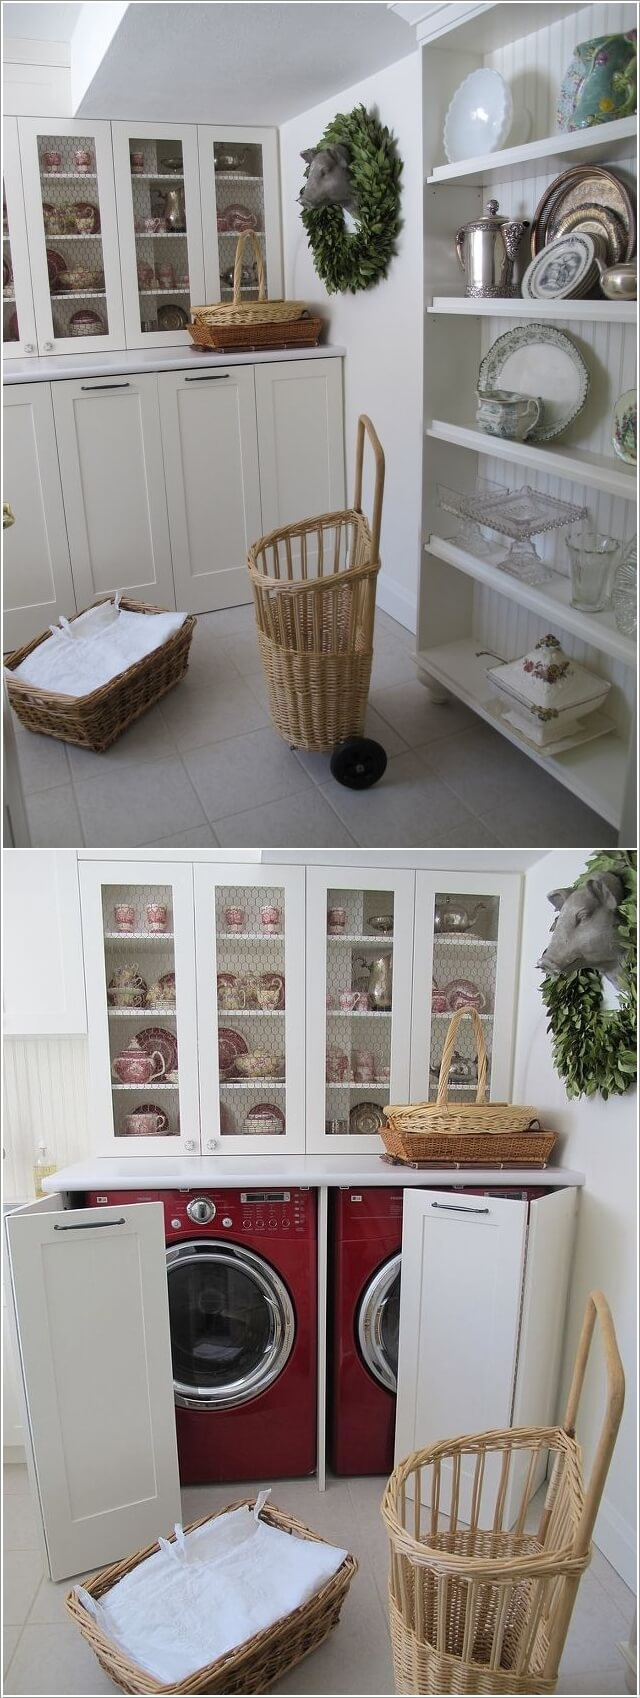 10 Clever Hidden Storage Ideas for Your Home 5